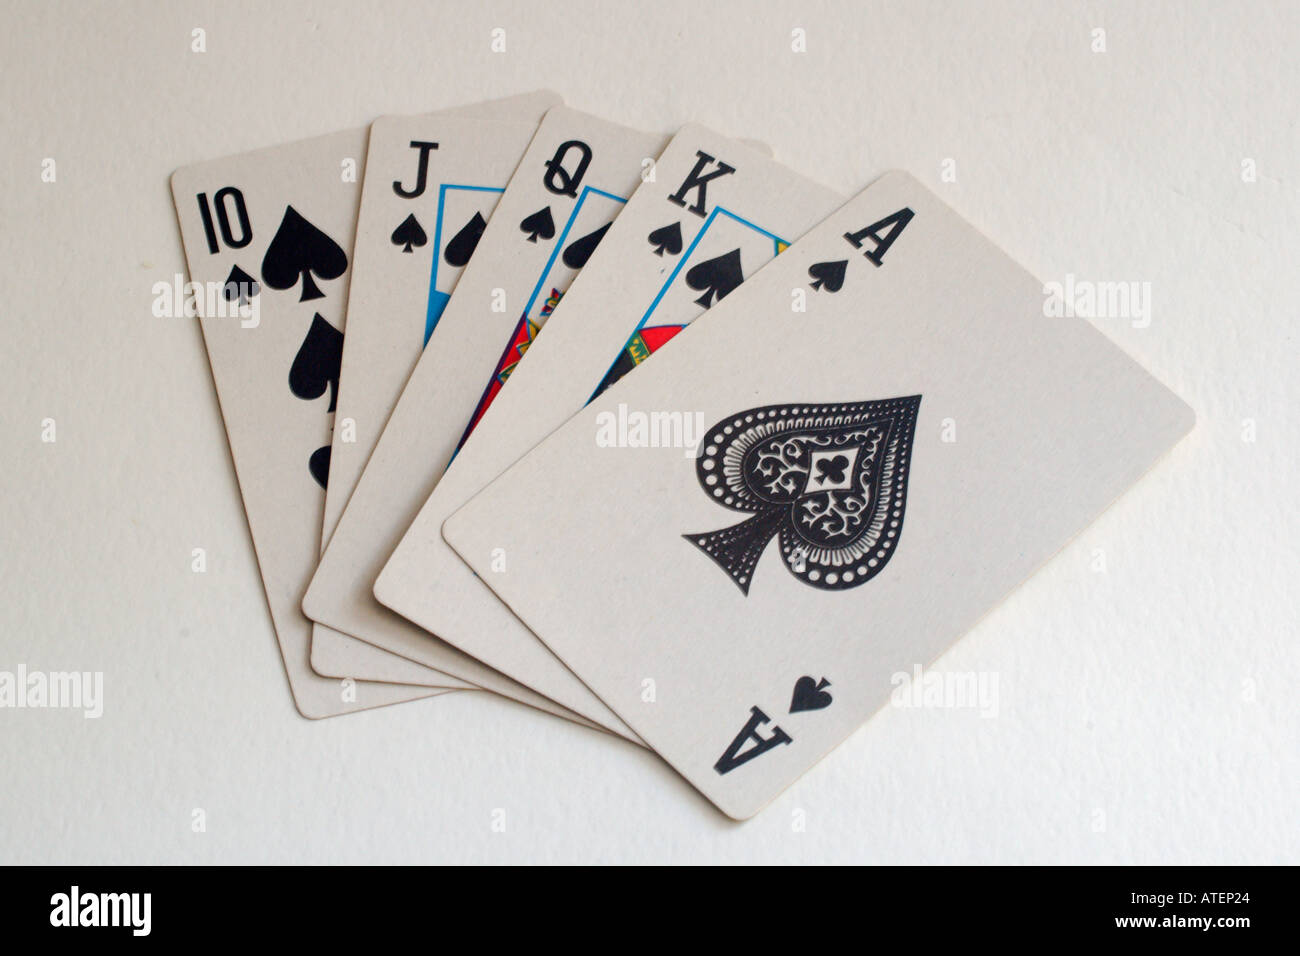 Royal flush ten jack queen king and ace of spades Stock